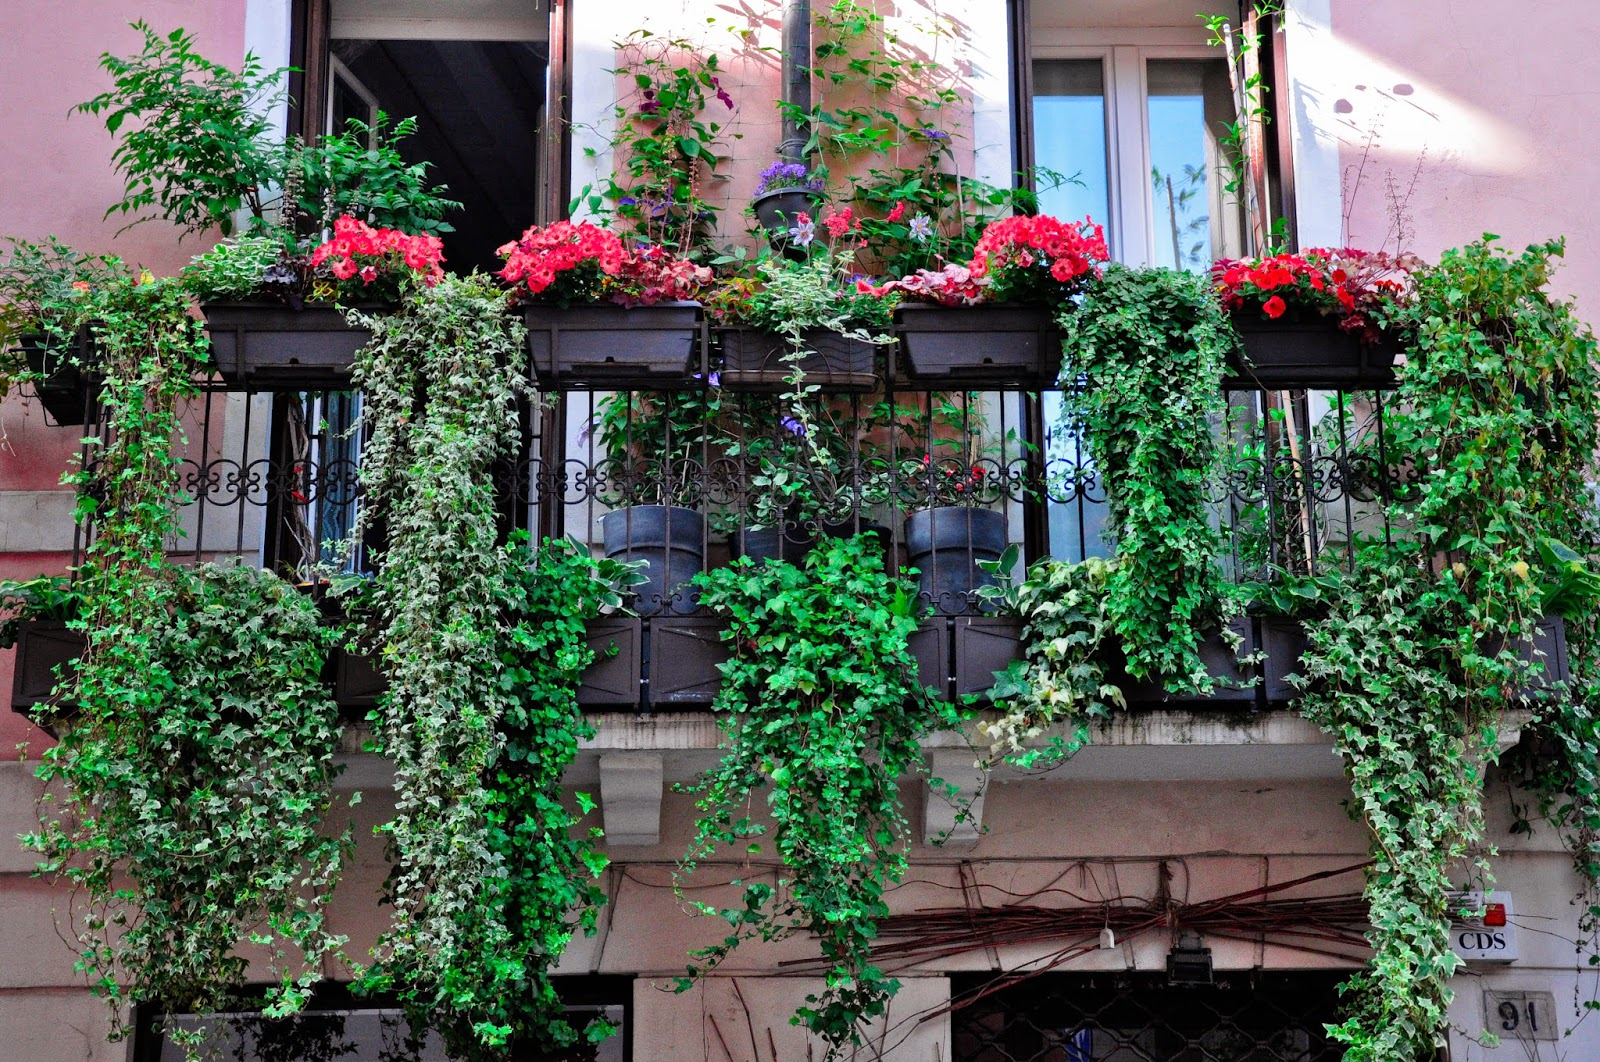 A hanging garden on a balcony in Vicenza, Italy